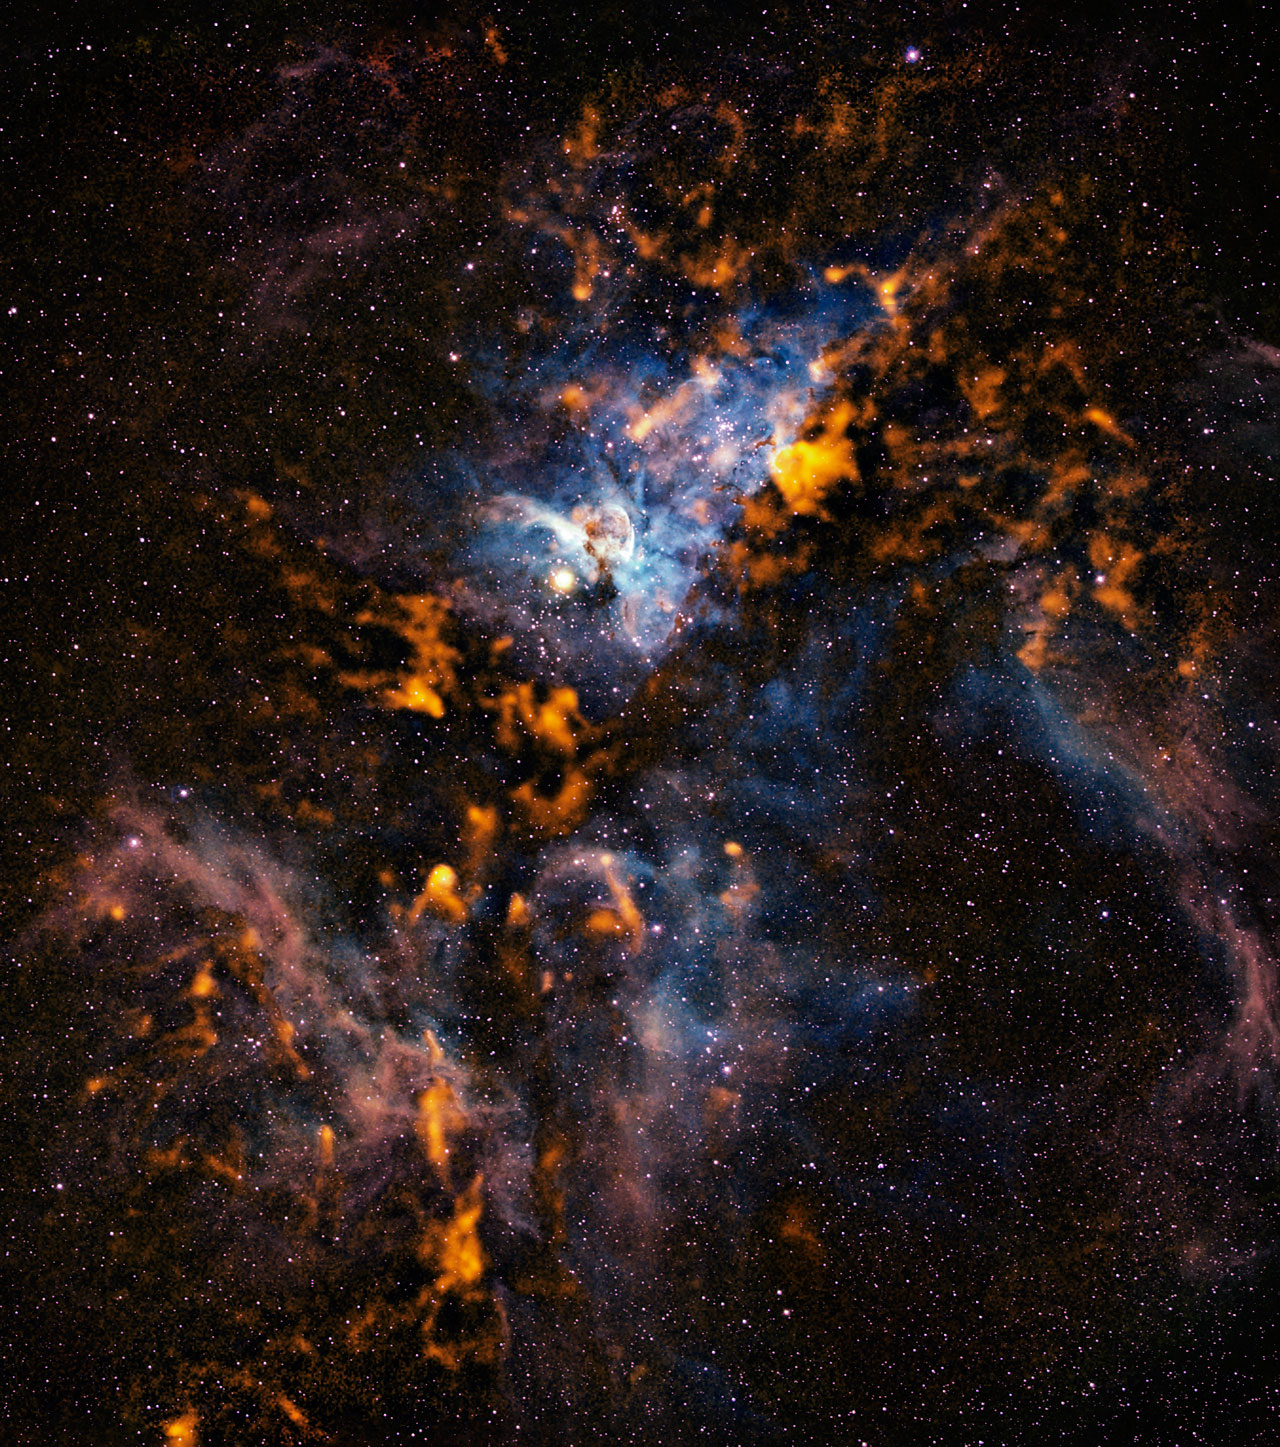 Mounted image 149: The Cool Clouds of Carina